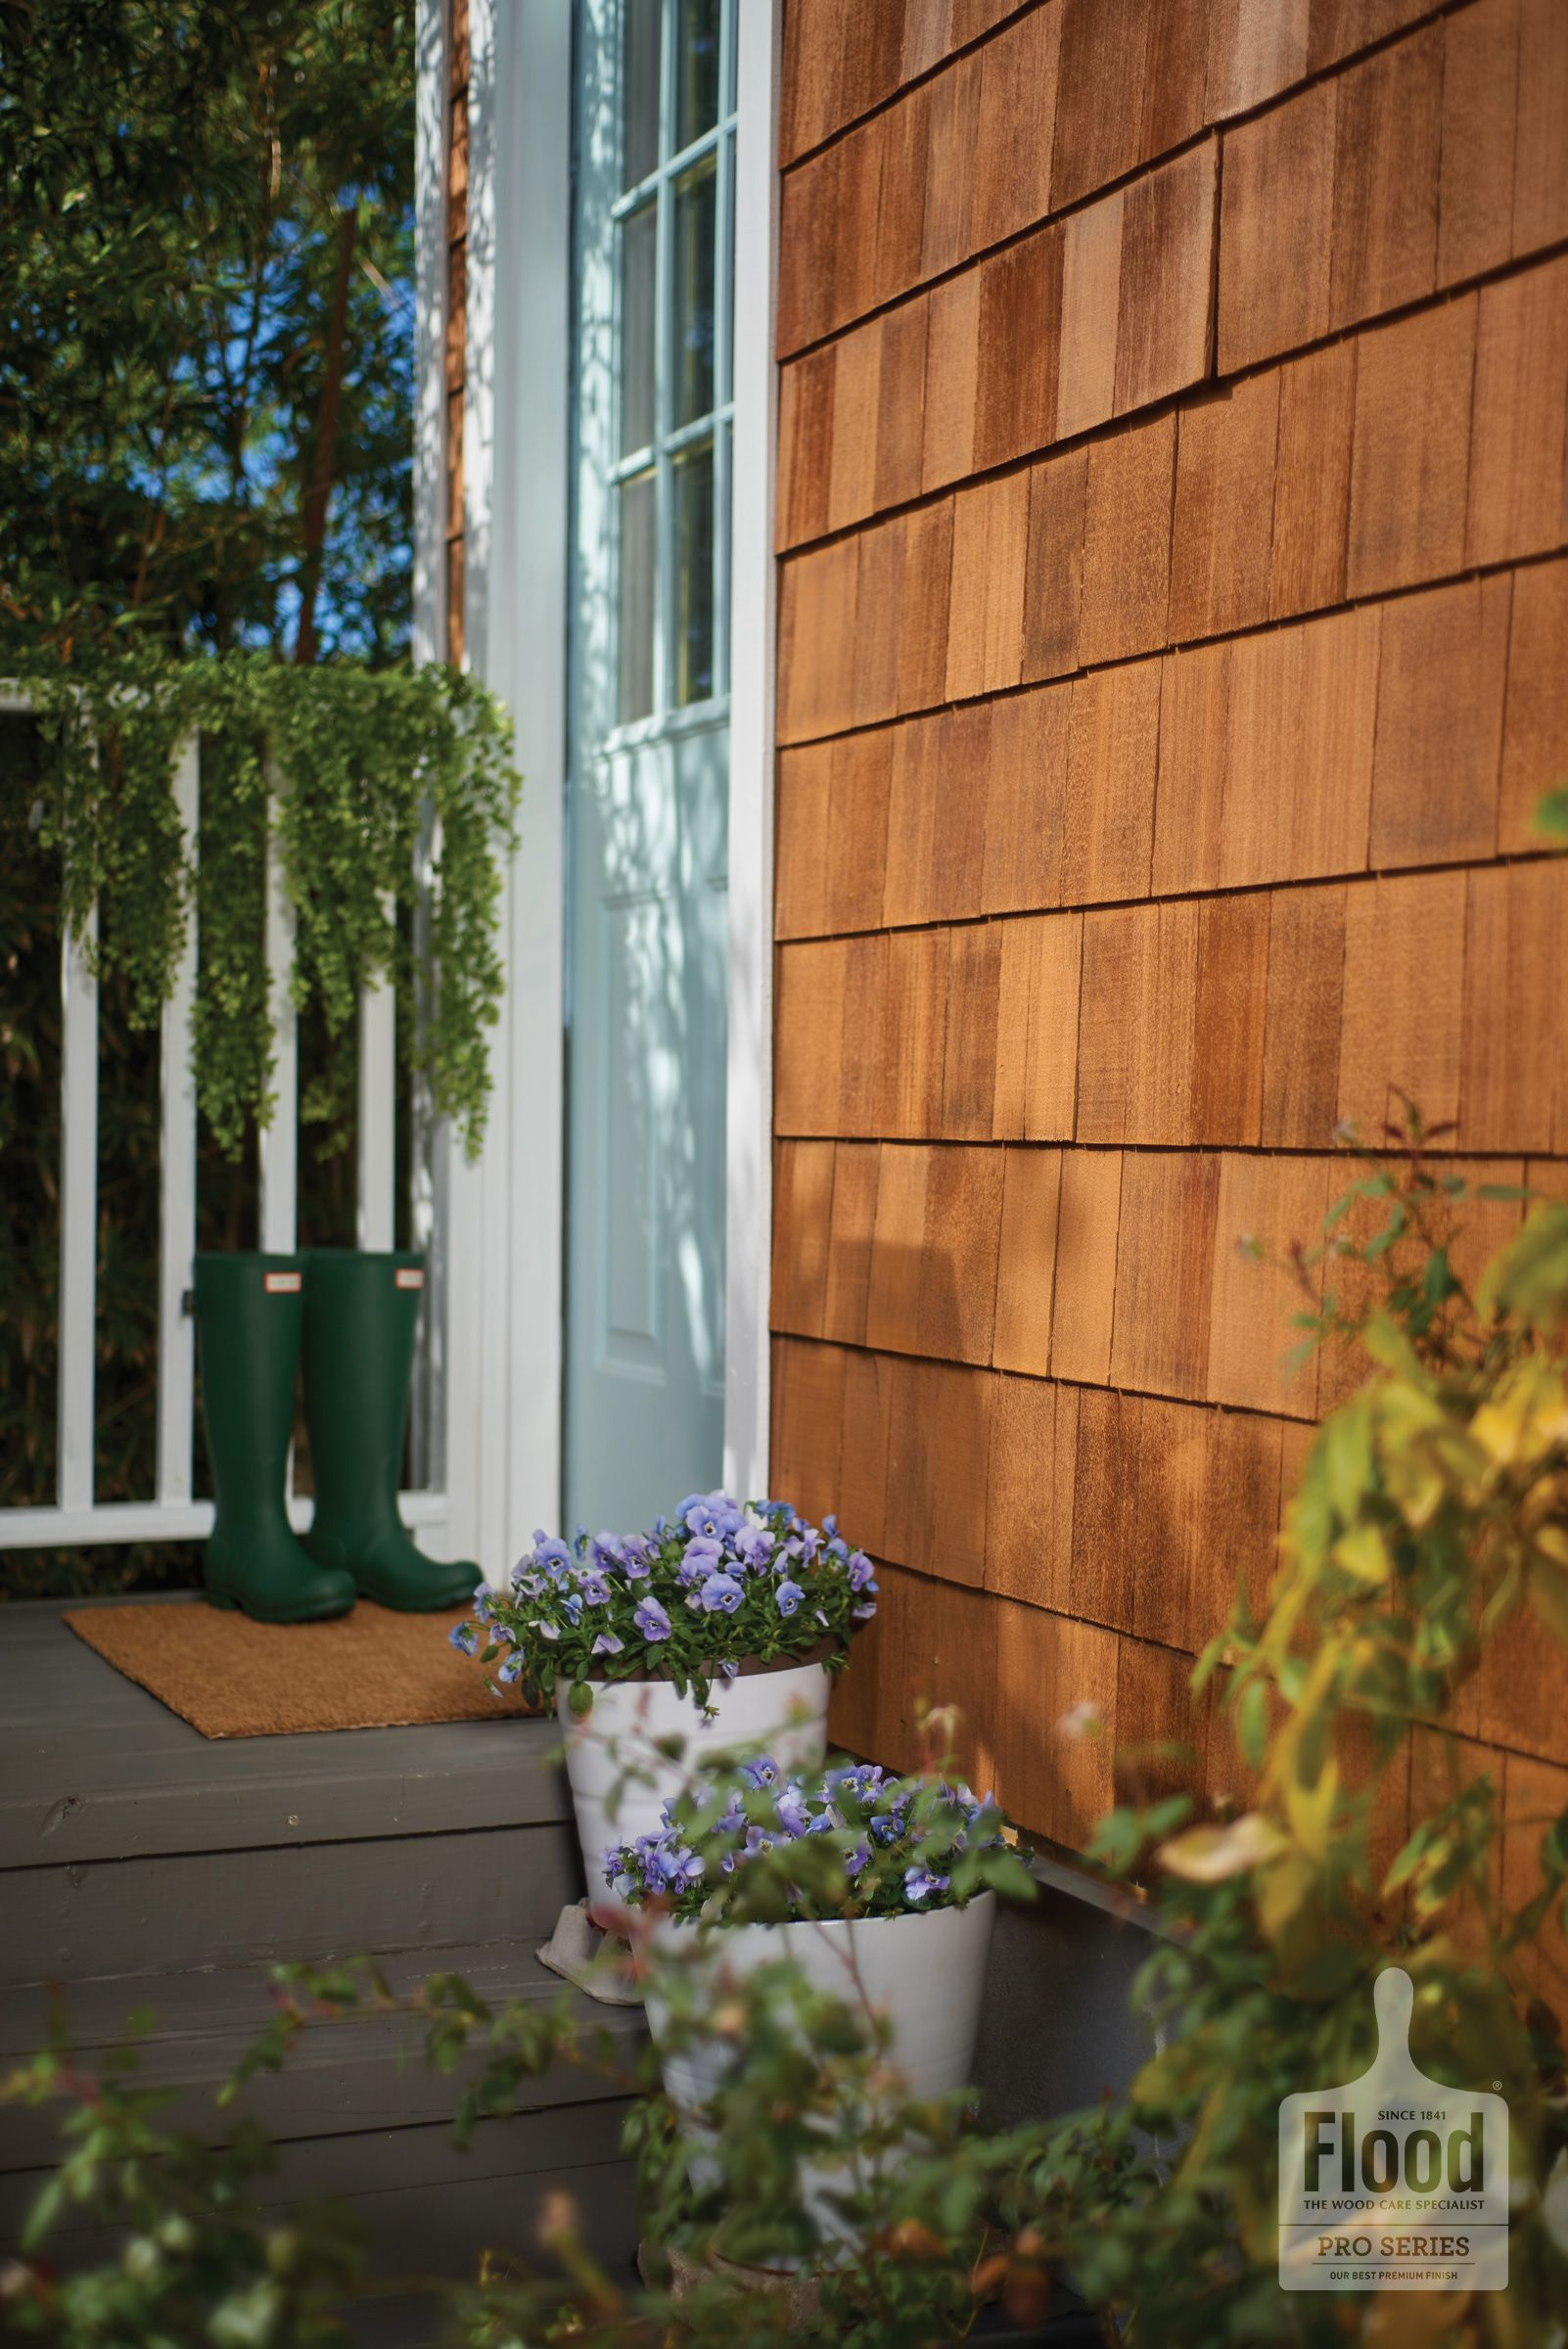 Flood Pro Series Cwf Uv 5 Wood Stain In Honey Gold Provides